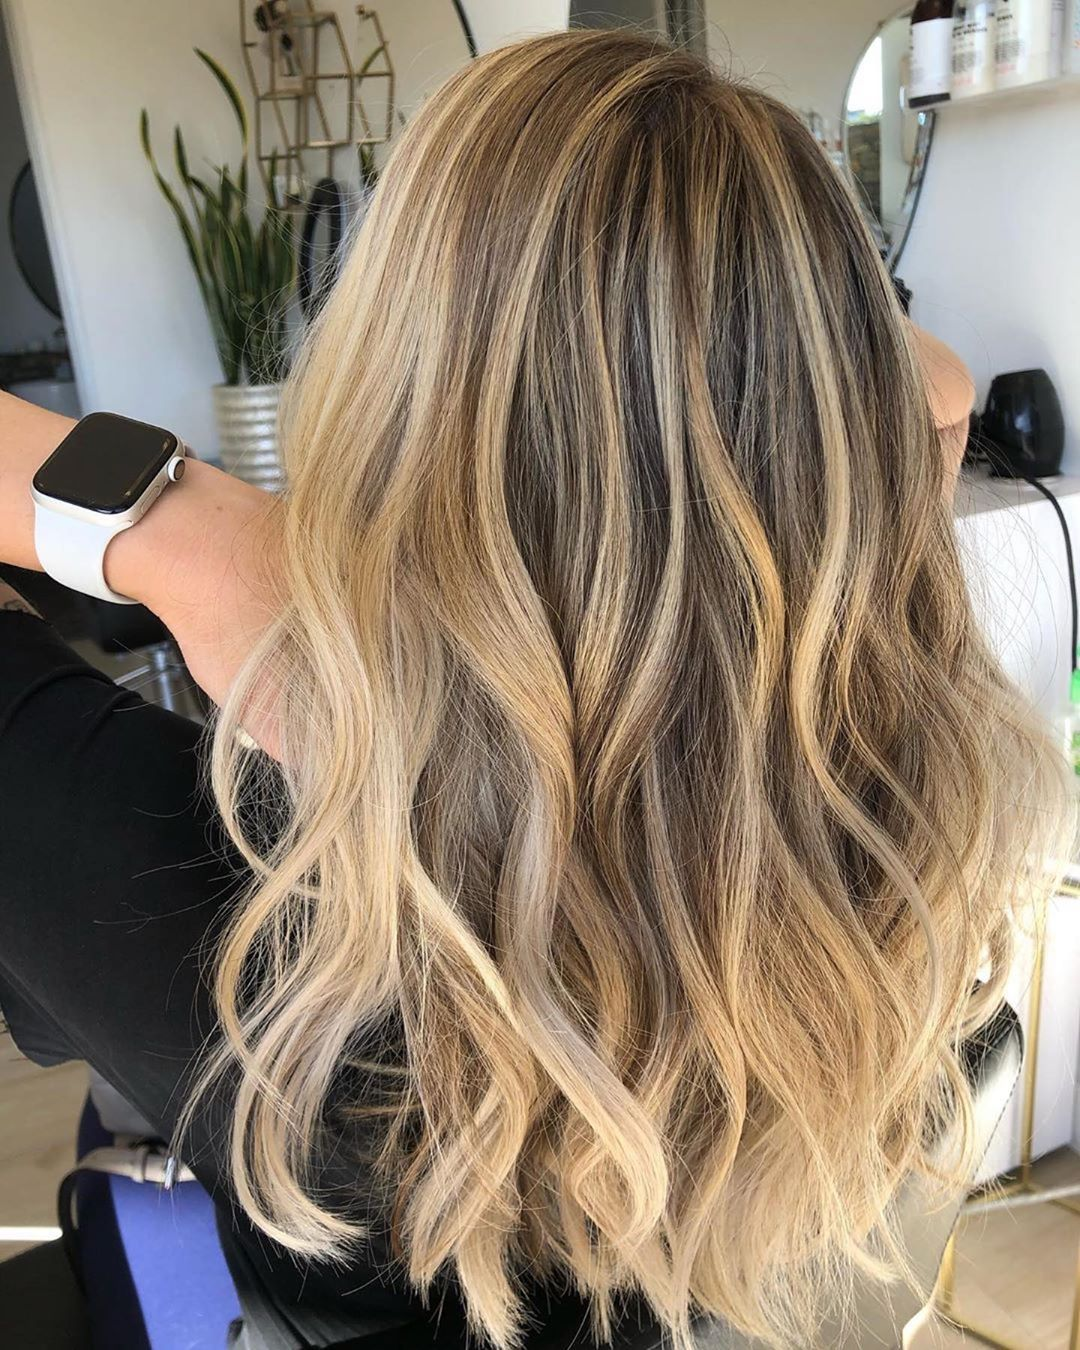 BEAUTIFUL GOLDEN BLONDE 💛 By @hairbycrystalelizabeth • Wish I took a before! 🤦🏼♀️ But she came in with 2 years of no color so pretty much virgin hair. I did a full head of baby lights and balayage root smudge and all over gloss • • • #keune #newportbeachhairstylist #hairstylist #newportbeachblondes #blondespeacialist #cdmhair #hairincdm #cdmhairatylist #hairoftheday #instahaircolor #blonde #blondehair #blondespecialistoc #livedincolor #livedinblonde #hairtransformation #balayage #blondebalay